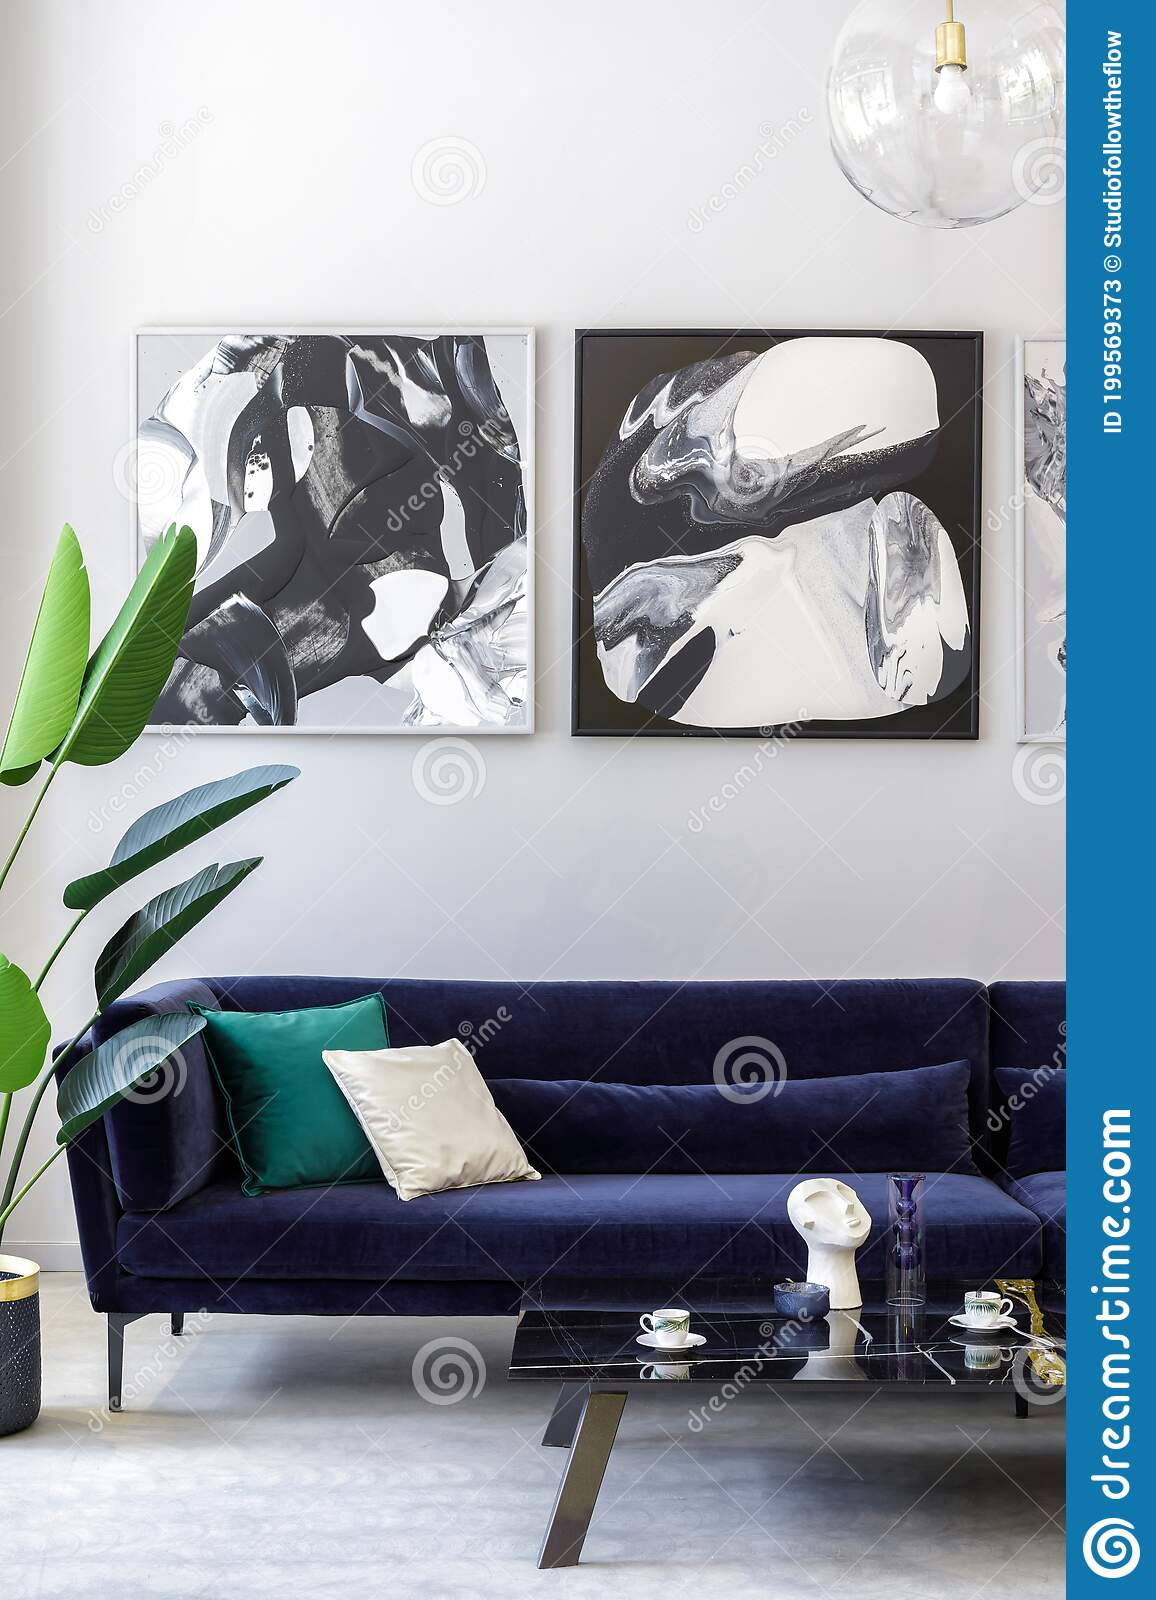 Stylish And Modern Living Room Interior With Blue Velvet Sofa Mock Up Paintings Design Furniture Plant Table Decoration Stock Image Image Of Furniture Concrete 199569373